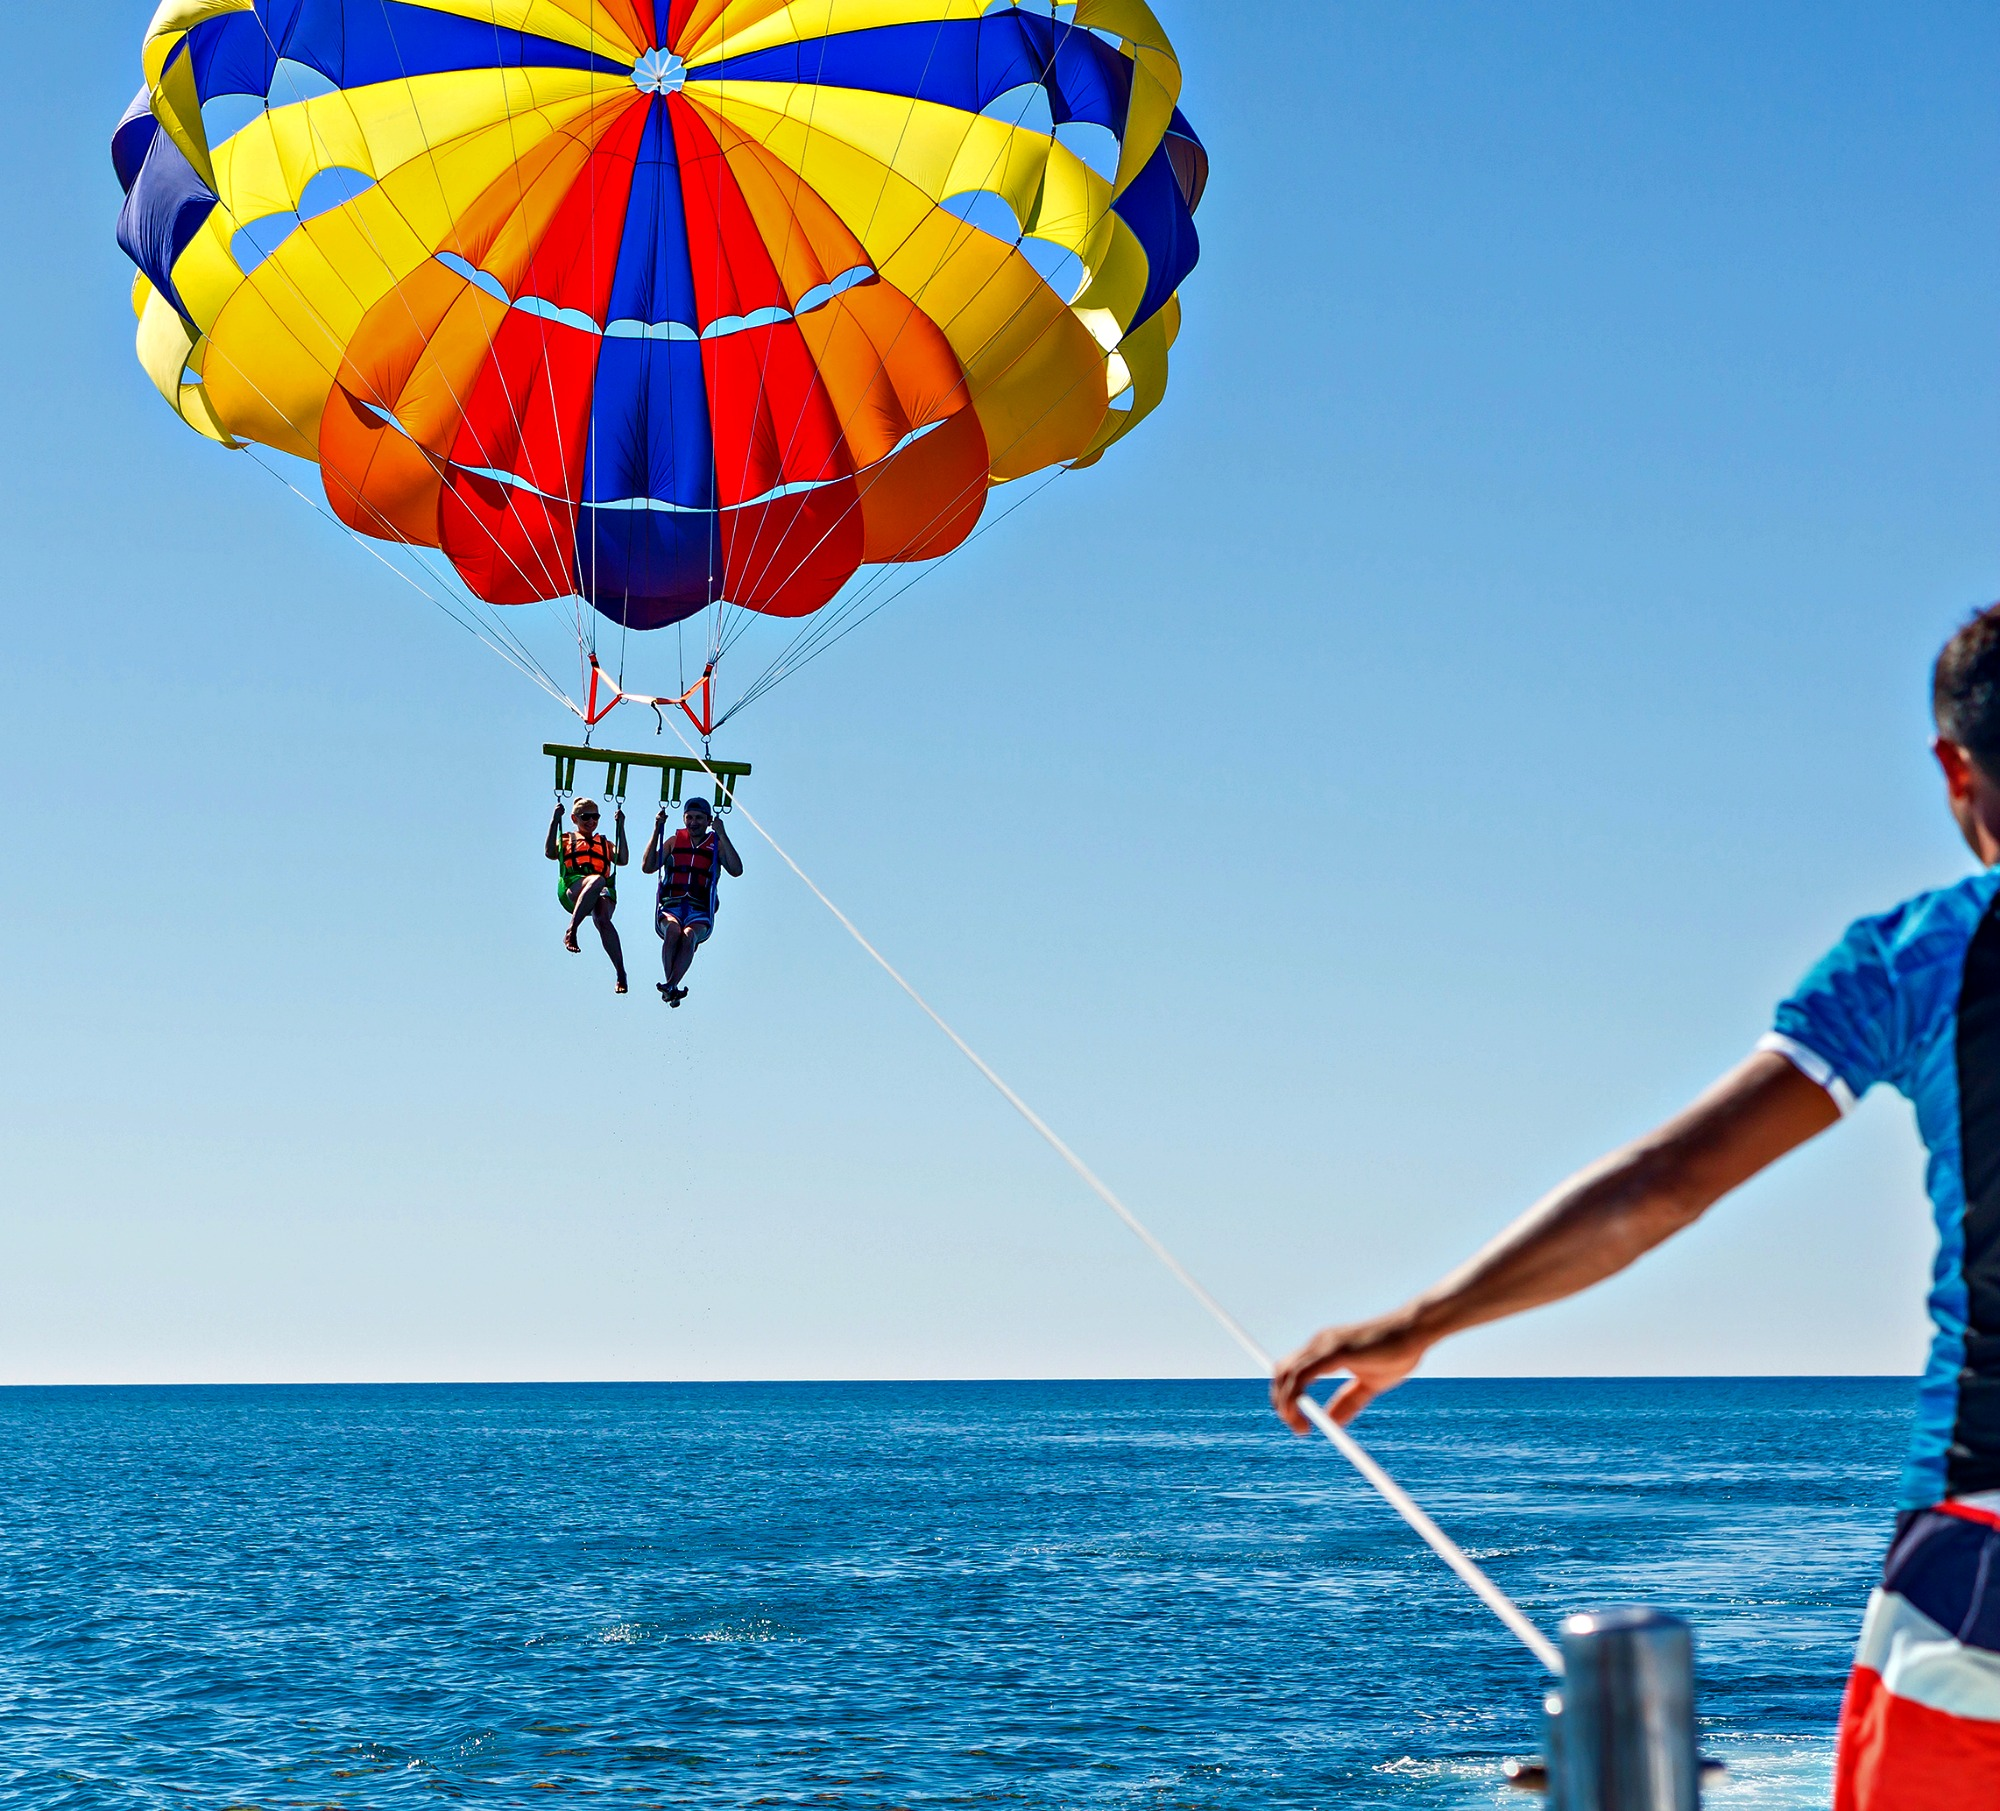 Parasailing in Destin FL